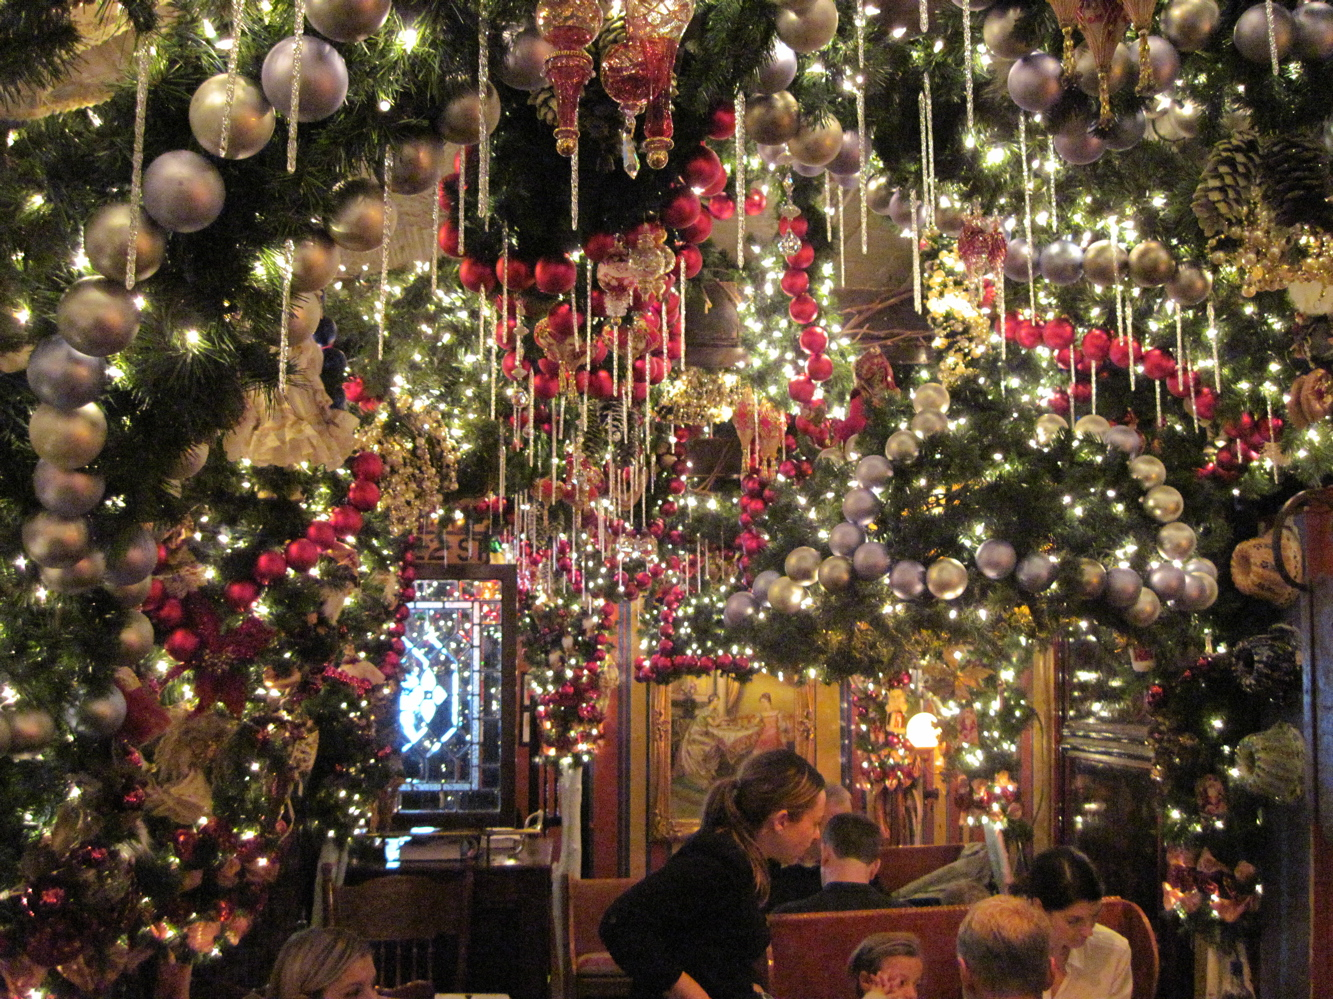 Christmas Decorations In Restaurant : Mitch broder s vintage new york old christmas